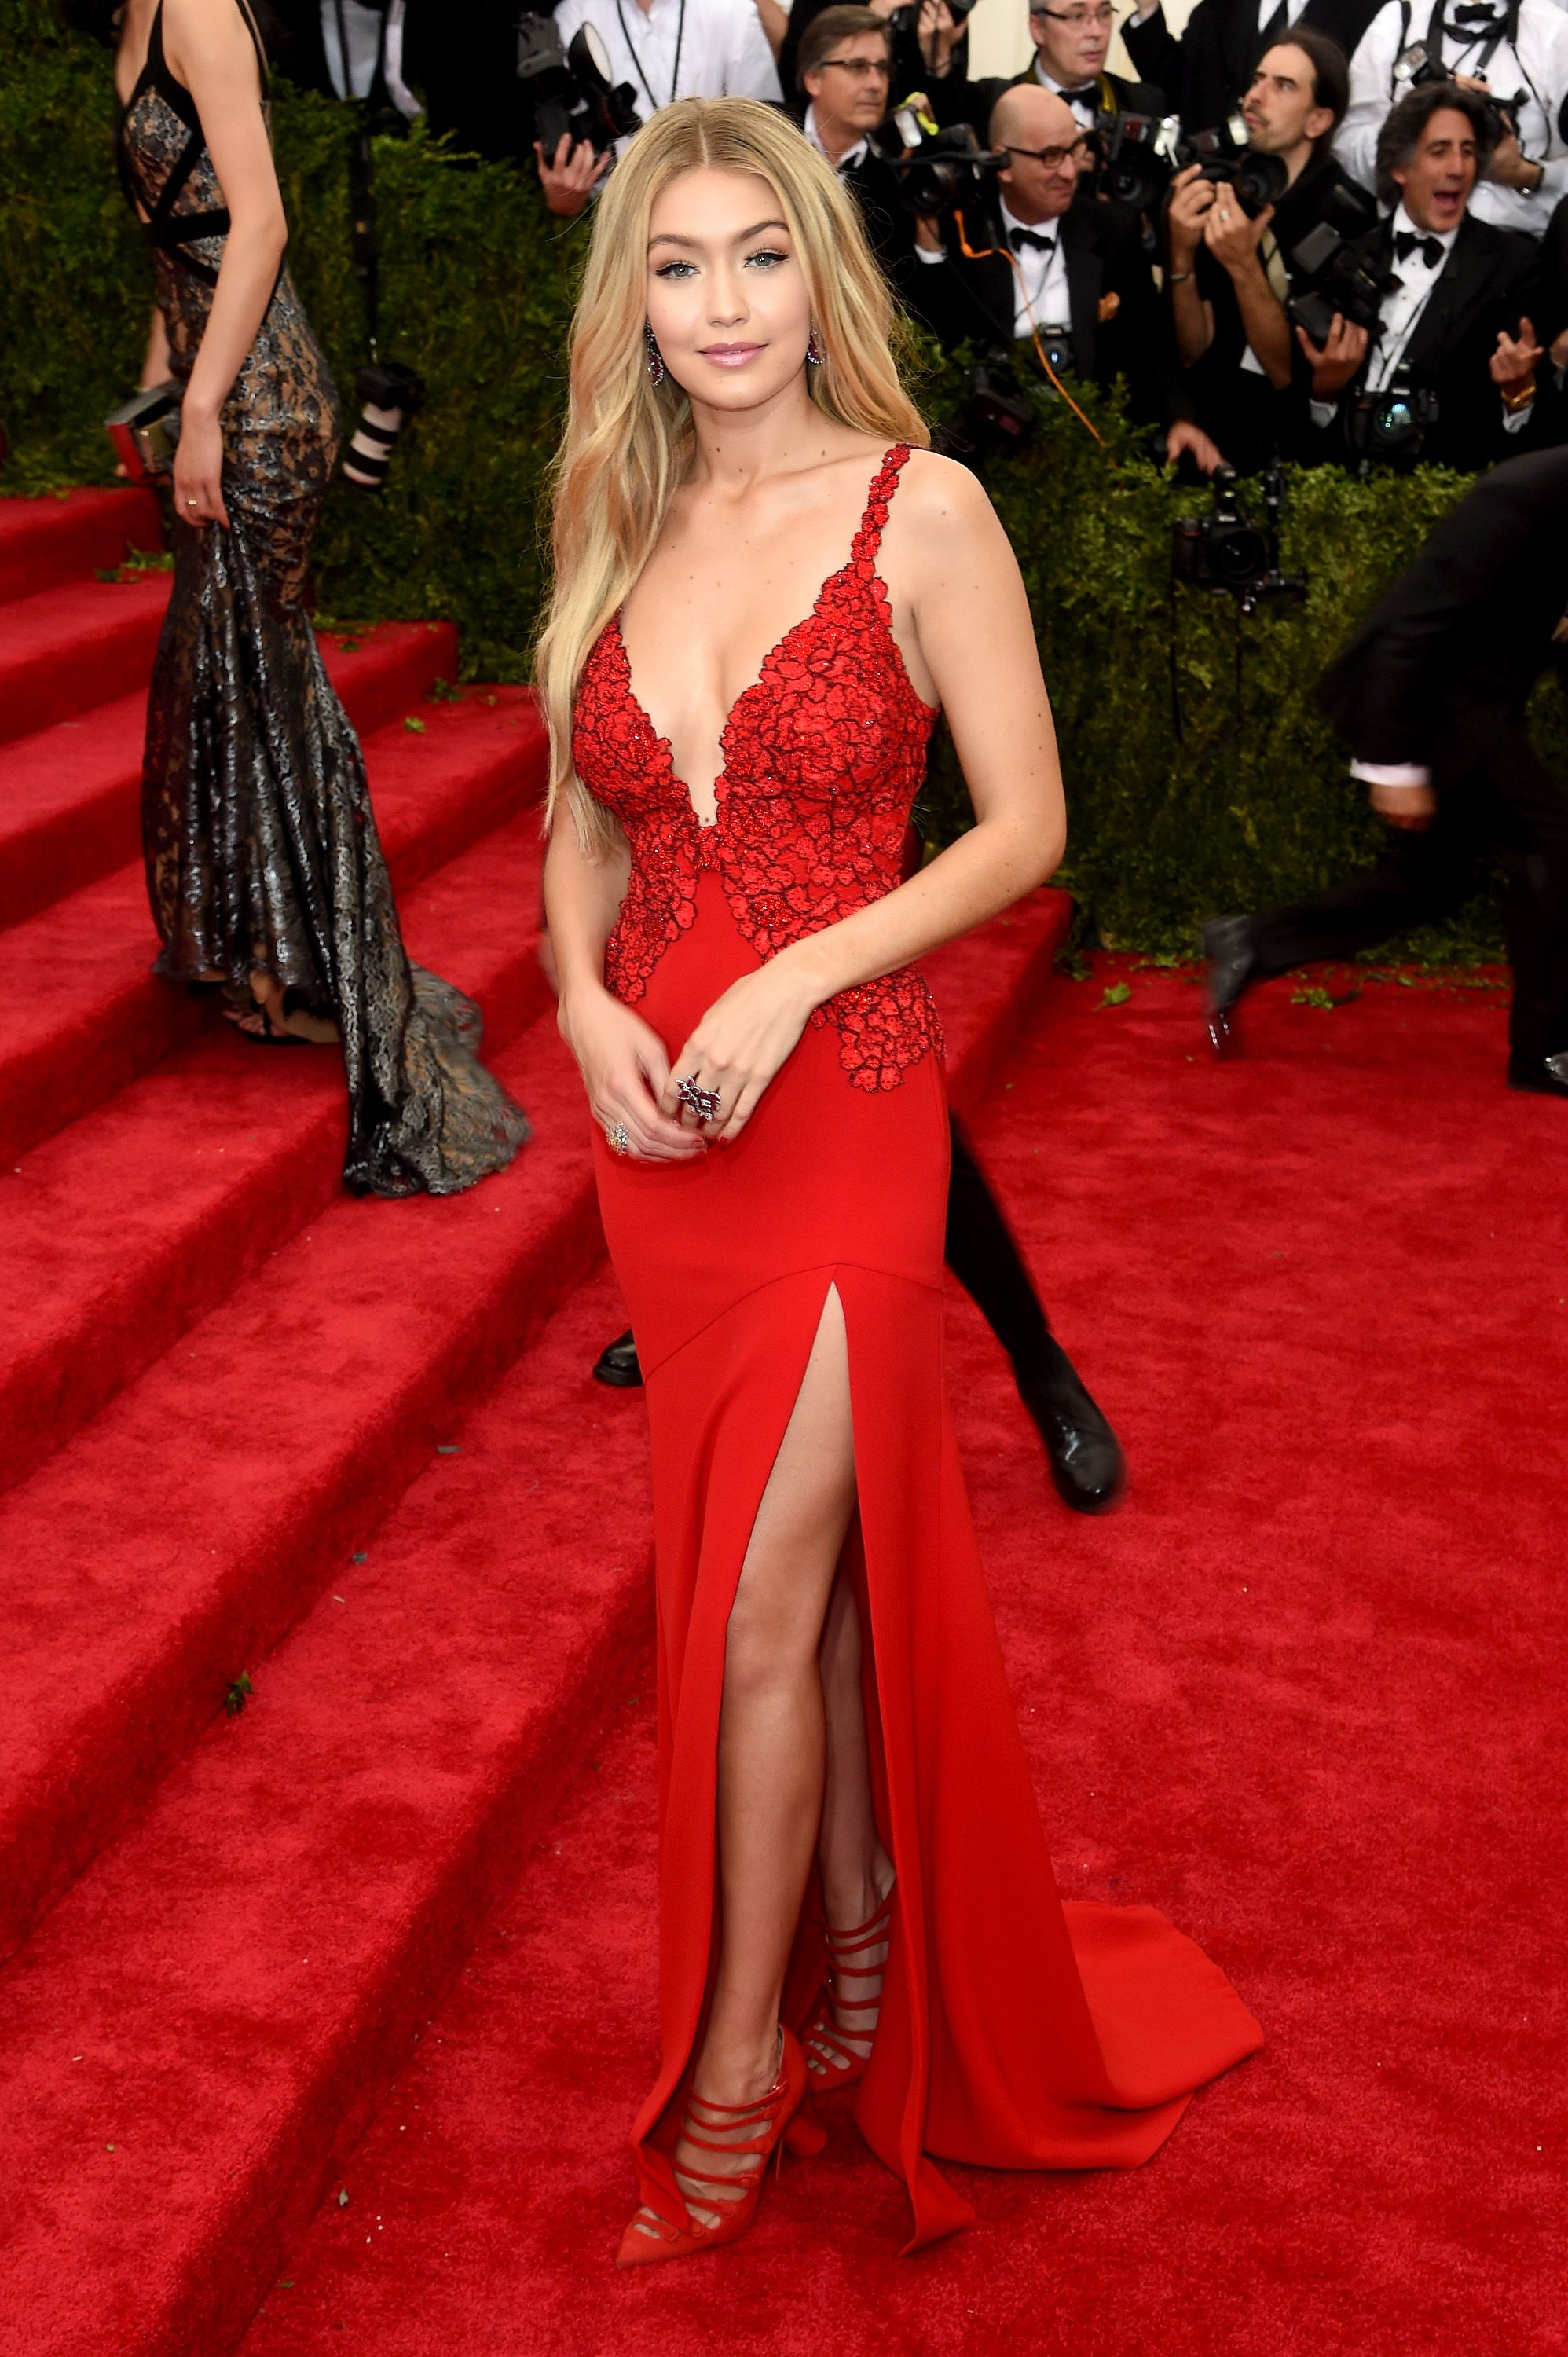 bc024a4e7aaa See All The Amazing Looks From the 2015 Met Gala | Red carpet | Röda ...